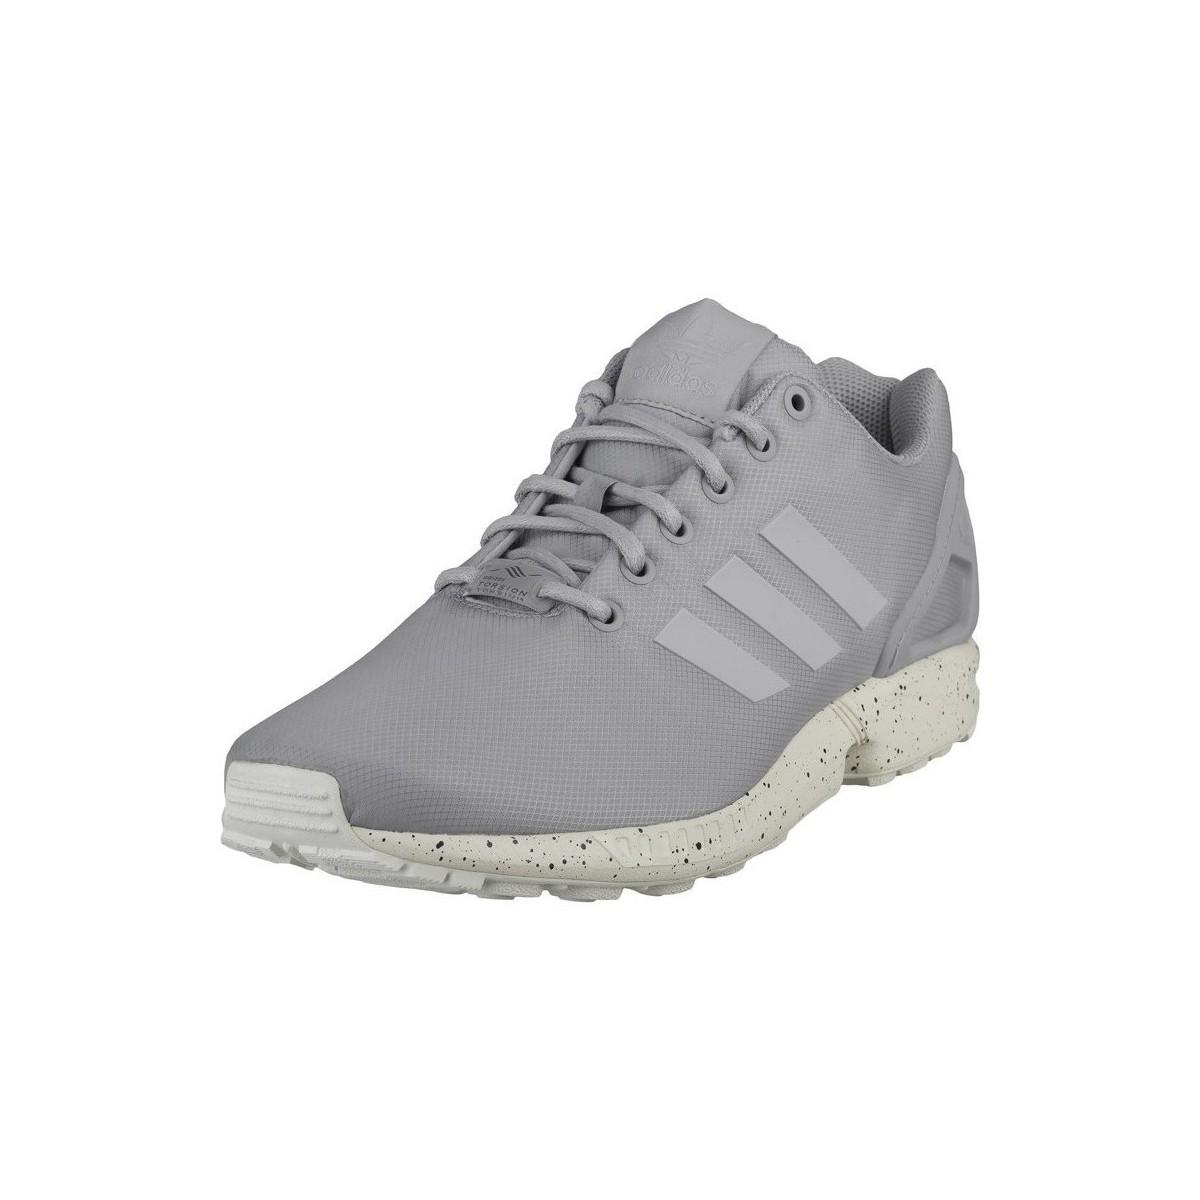 ffc6cd55a Adidas - Gray Zx Flux Men s Shoes (trainers) In Multicolour for Men - Lyst.  View fullscreen